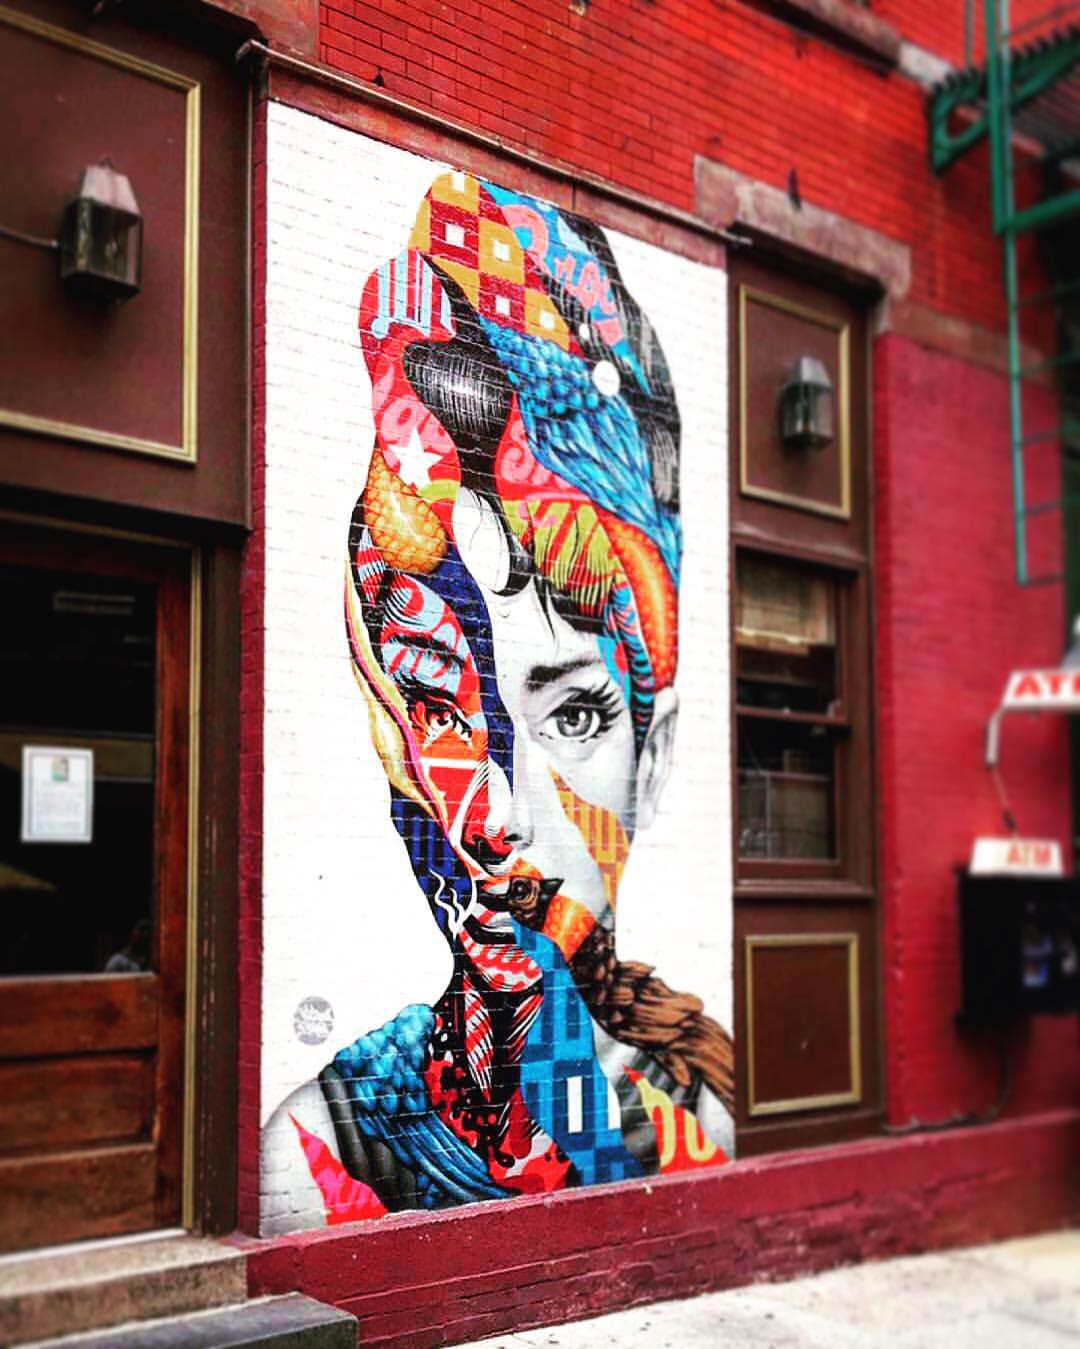 When did Audrey get so hipster? 💋 #streetart (at Little Italy in NYC)